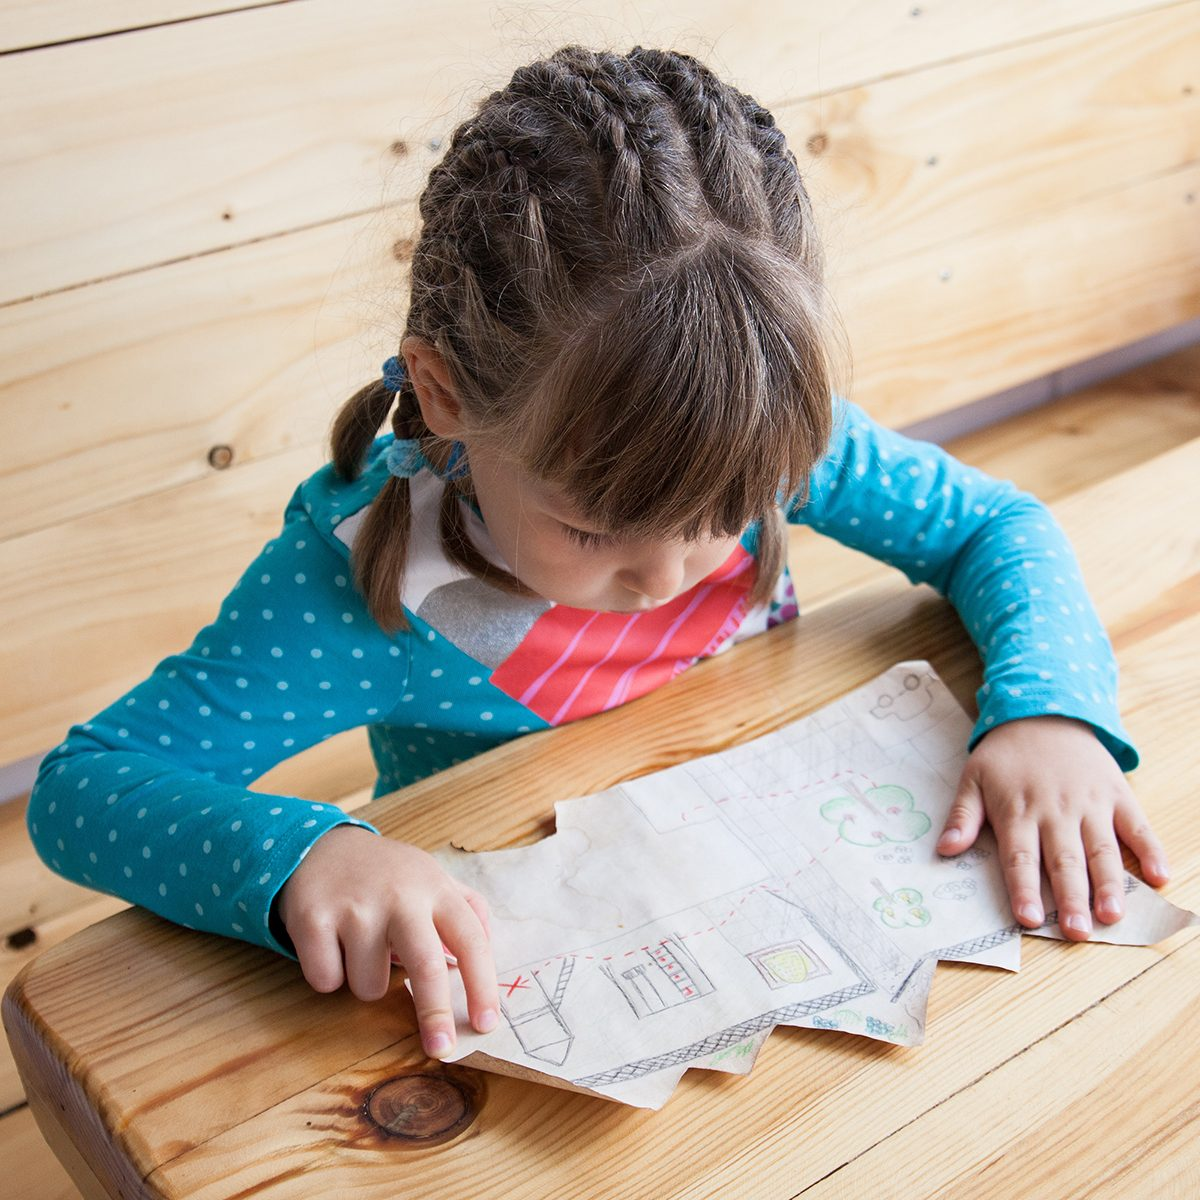 Little girl looking at the treasure map.